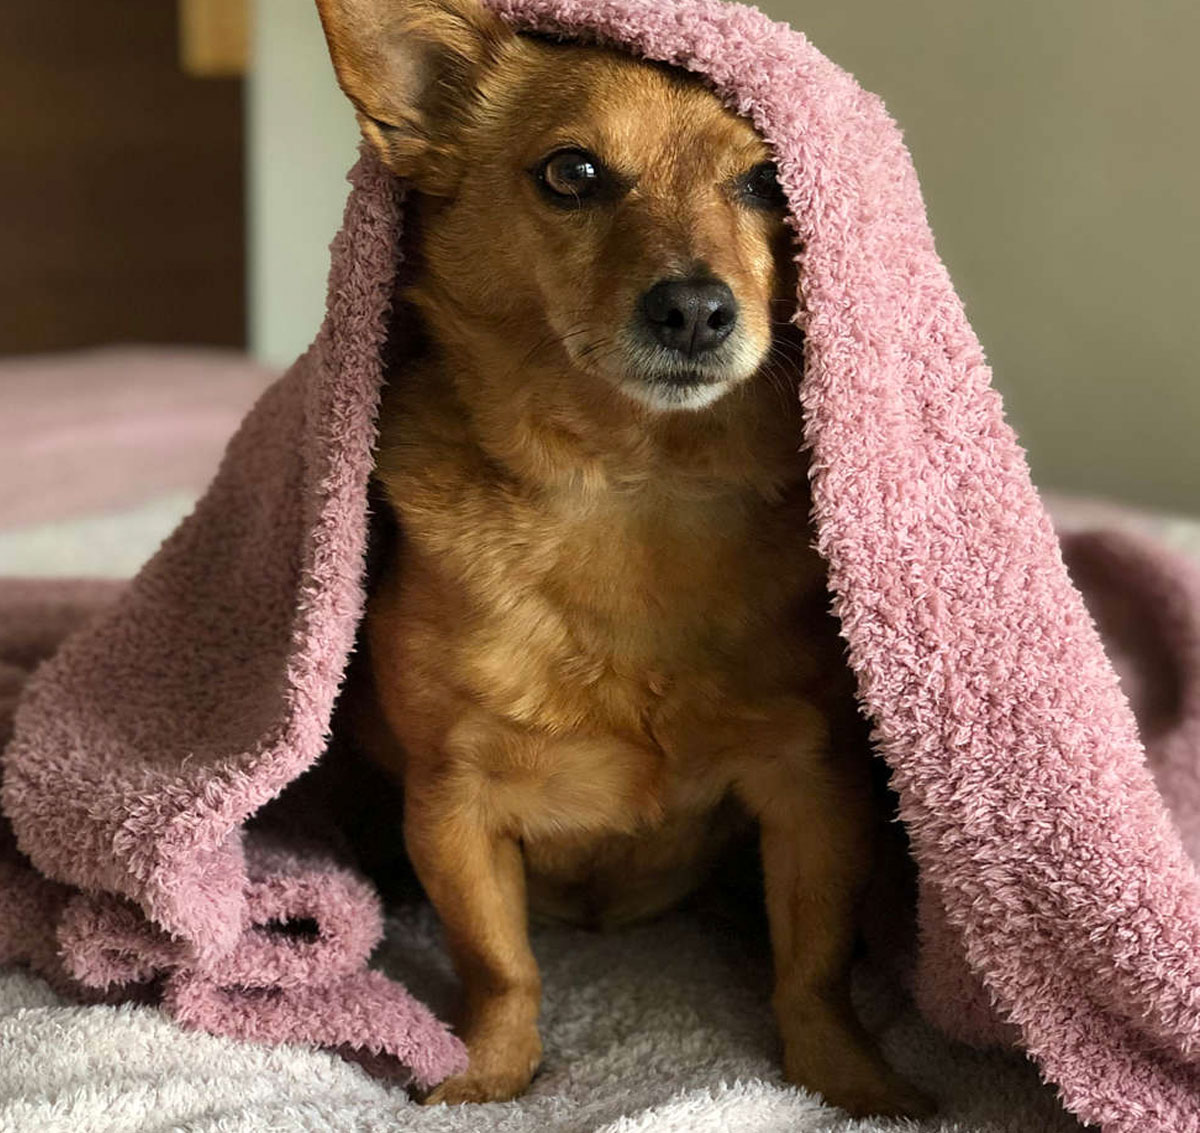 brown dog uner a pink plush throw blanket on bed